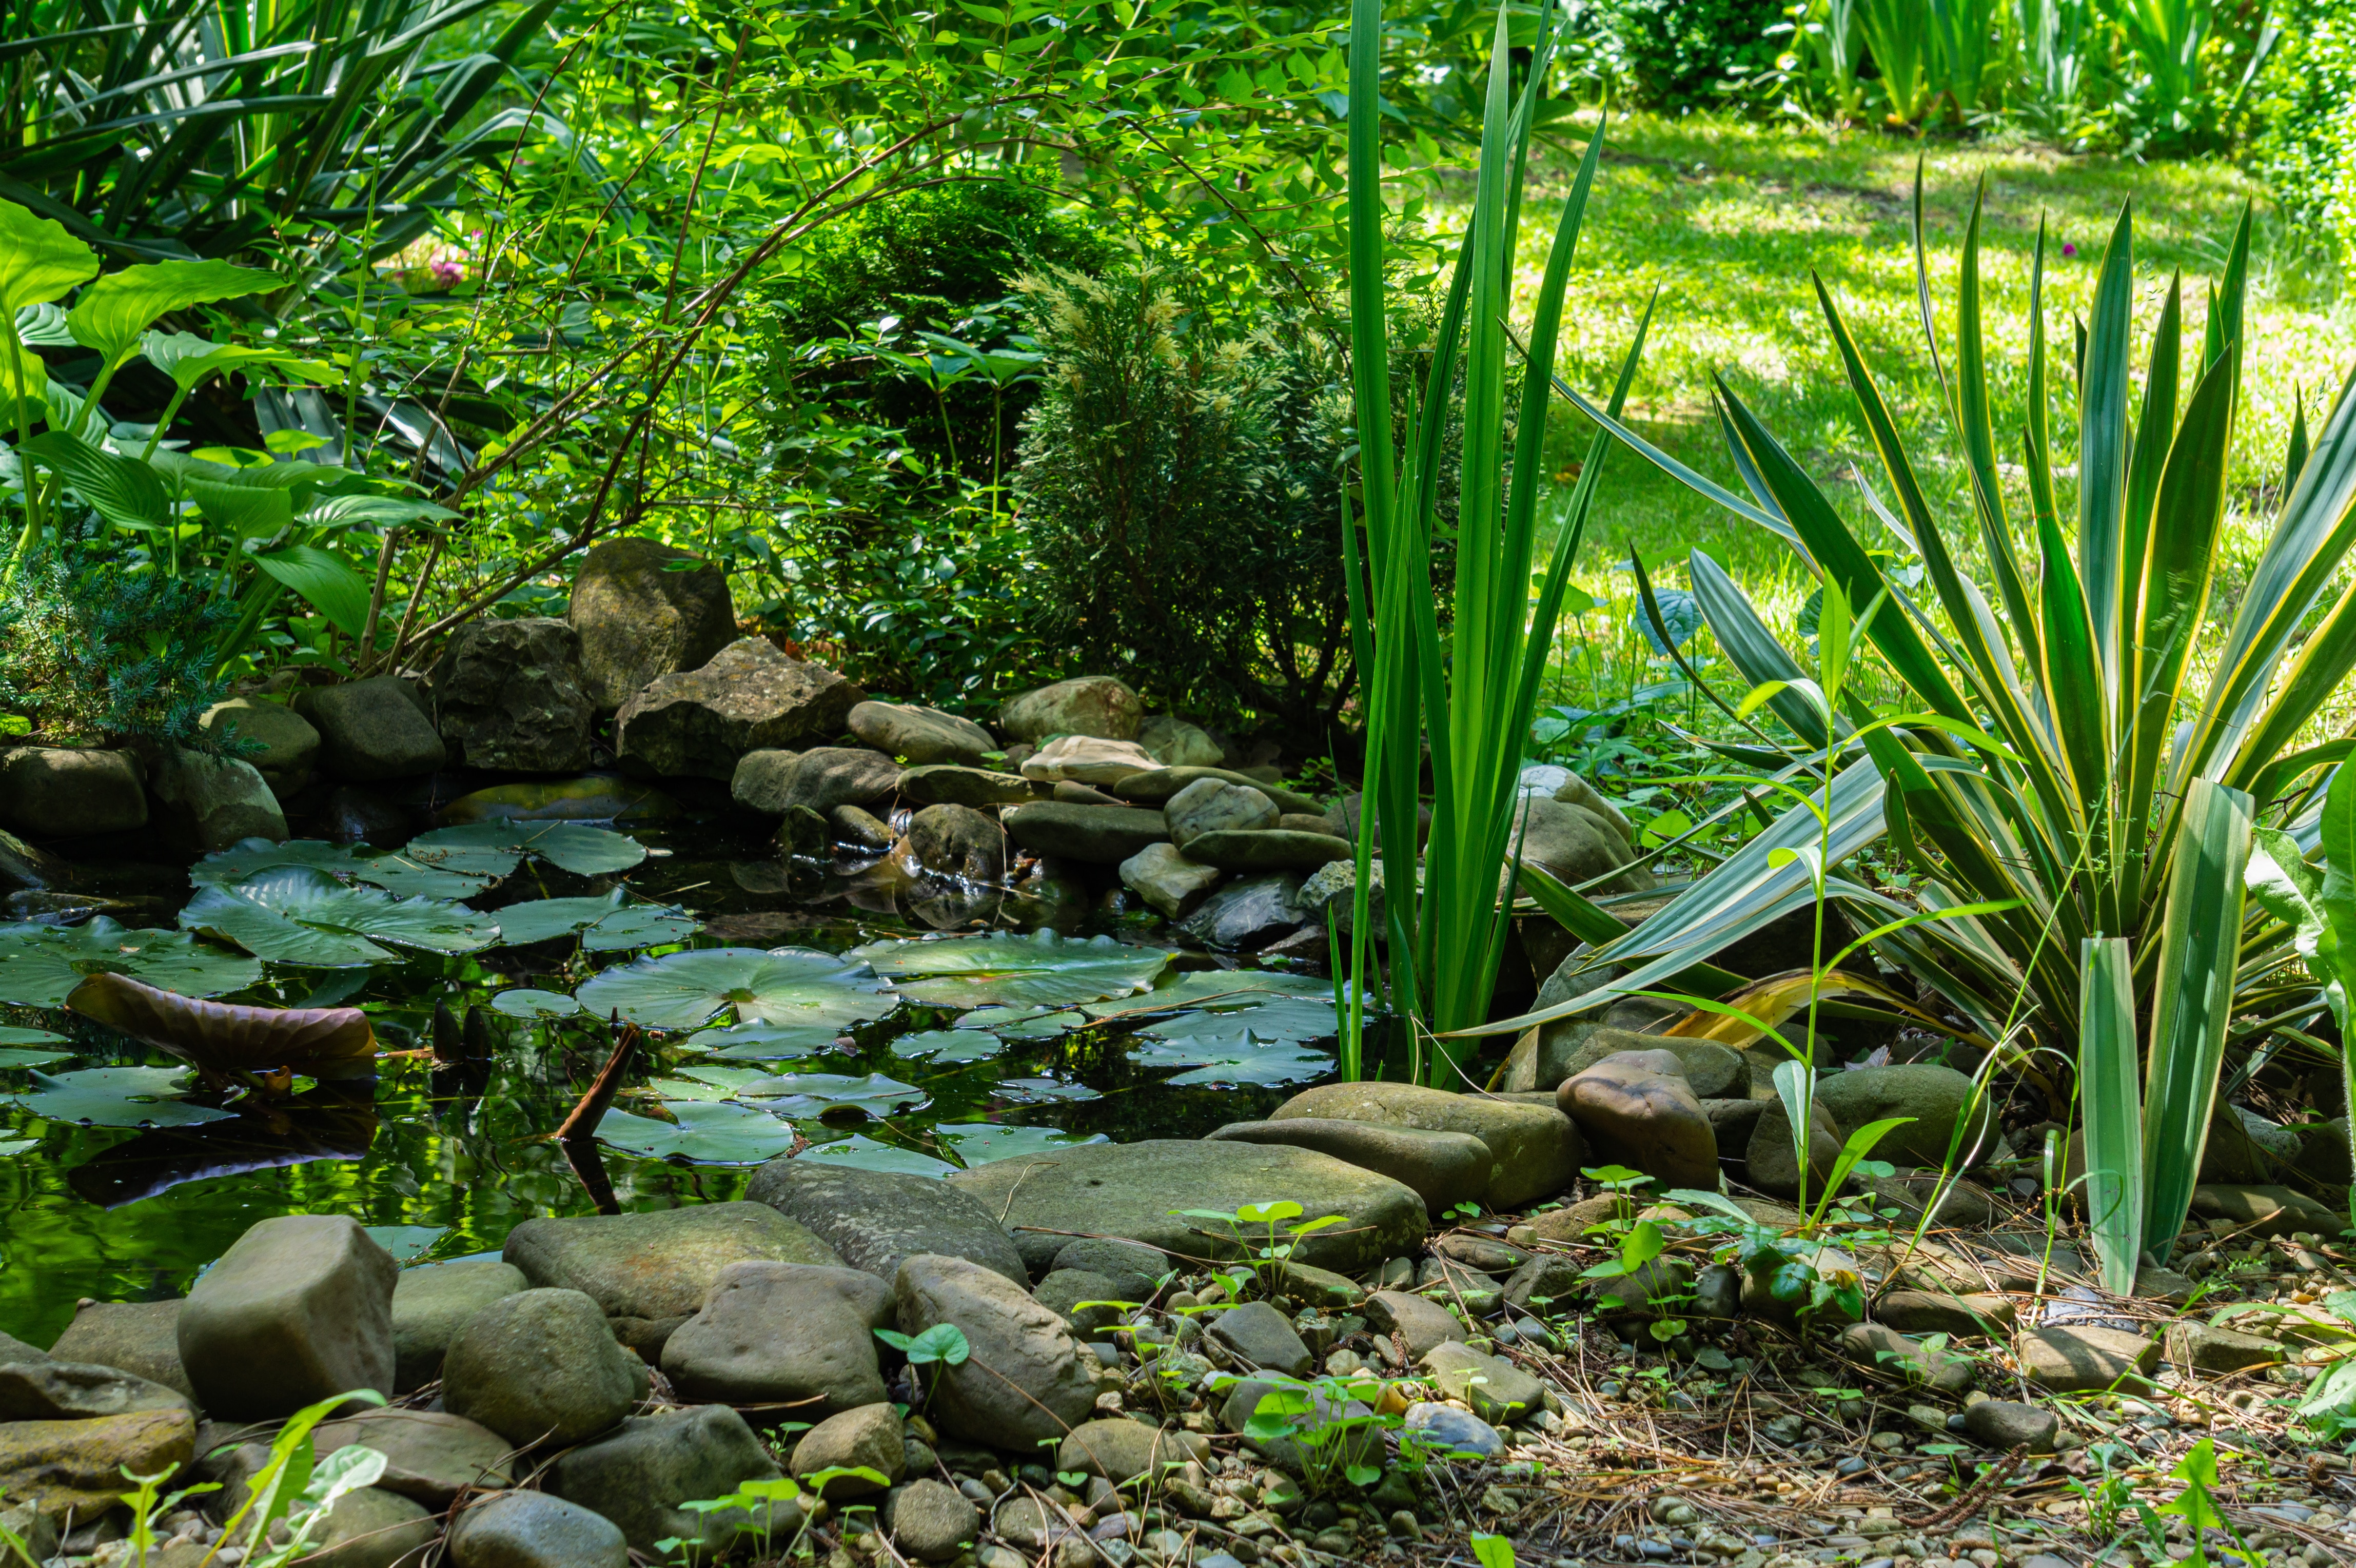 Beautiful small garden pond with stone shores in the spring. On shore among stones, striped yucca of Gloriosa Variegata grows. Selective focus. Nature concept for design.